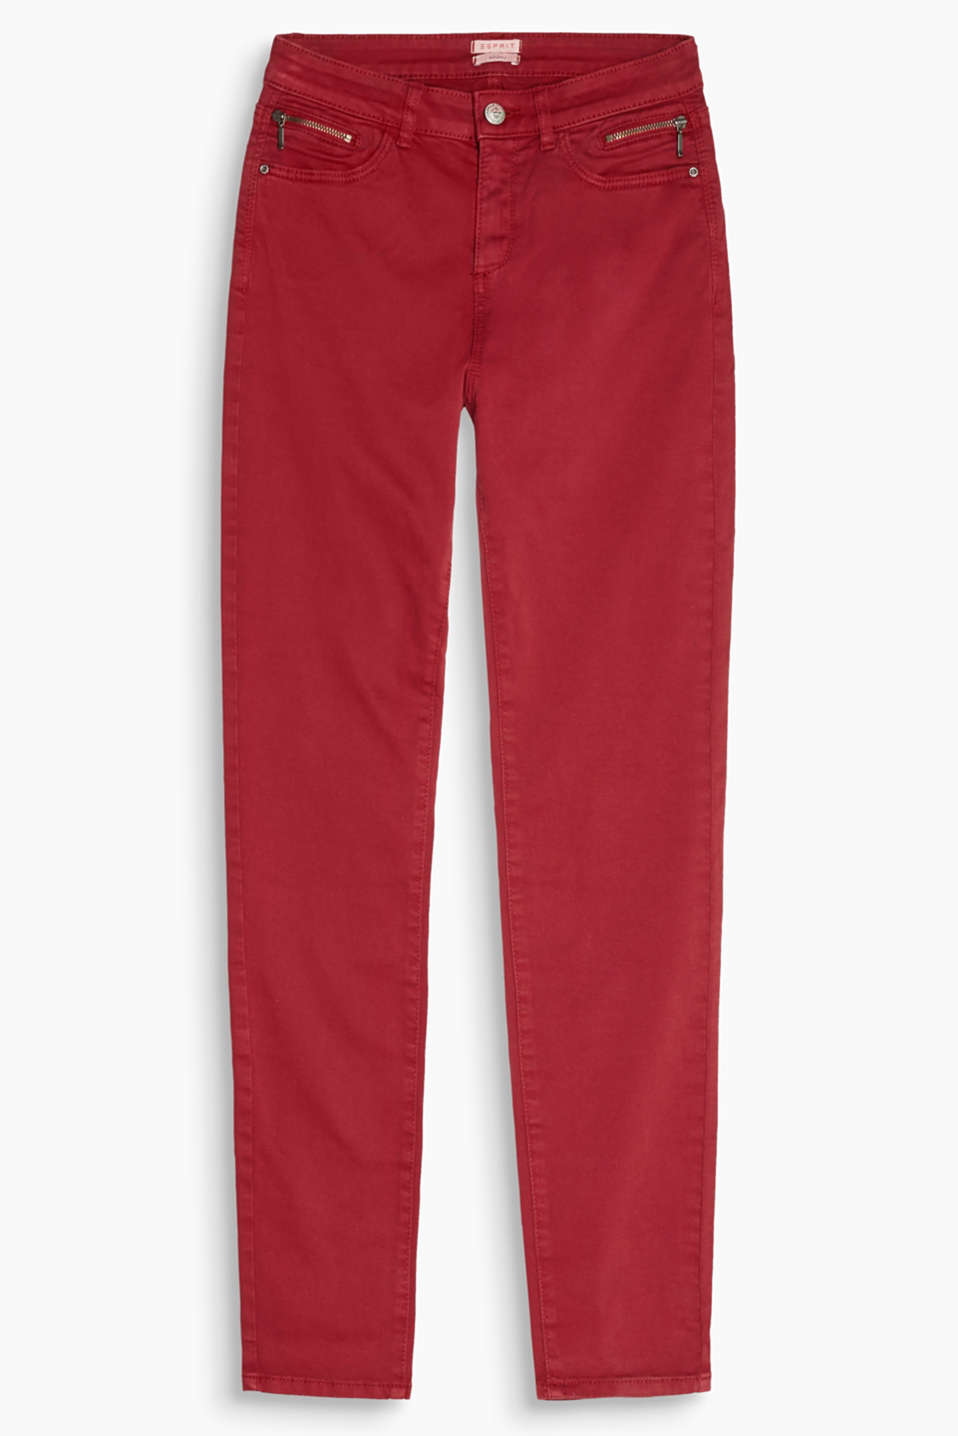 Decorative zips accentuate the stylish, high-waisted look: skin-tight trousers with a high-rise waist and elastane